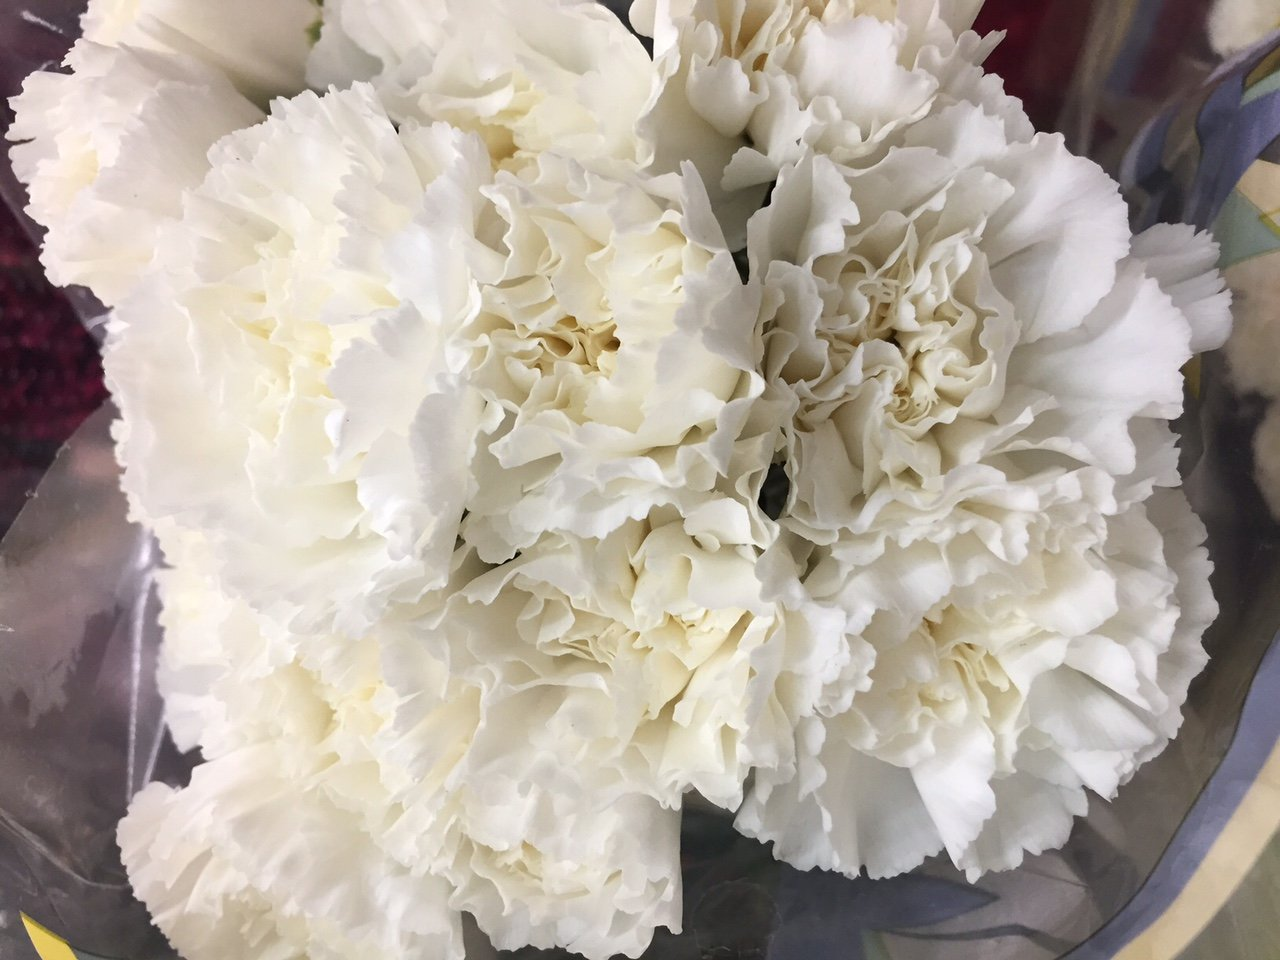 Amazon.com : Cut Flowers White Carnation : Garden & Outdoor